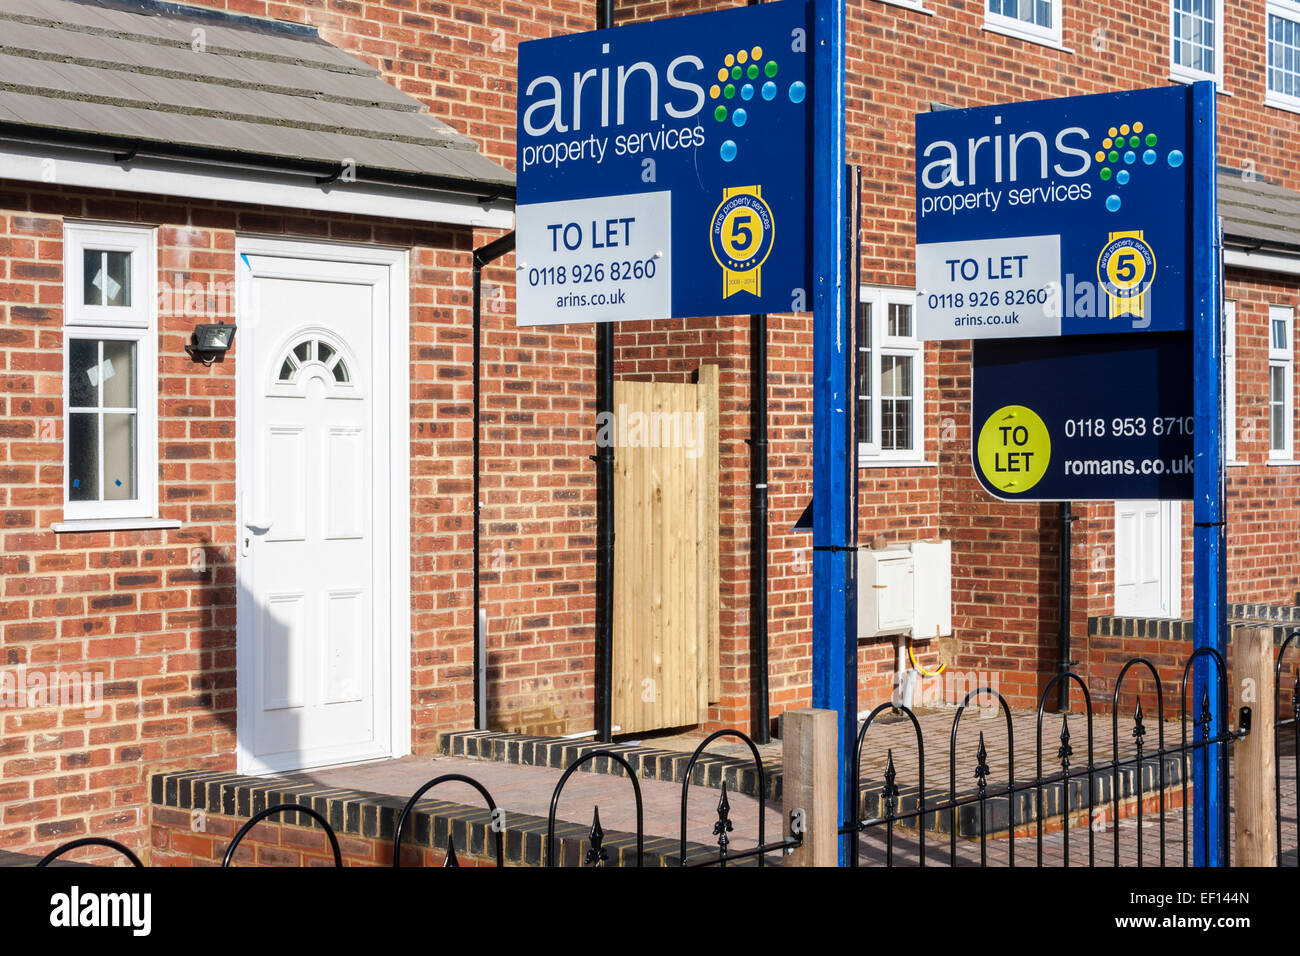 New housing with 'to let' signs. - Stock Image